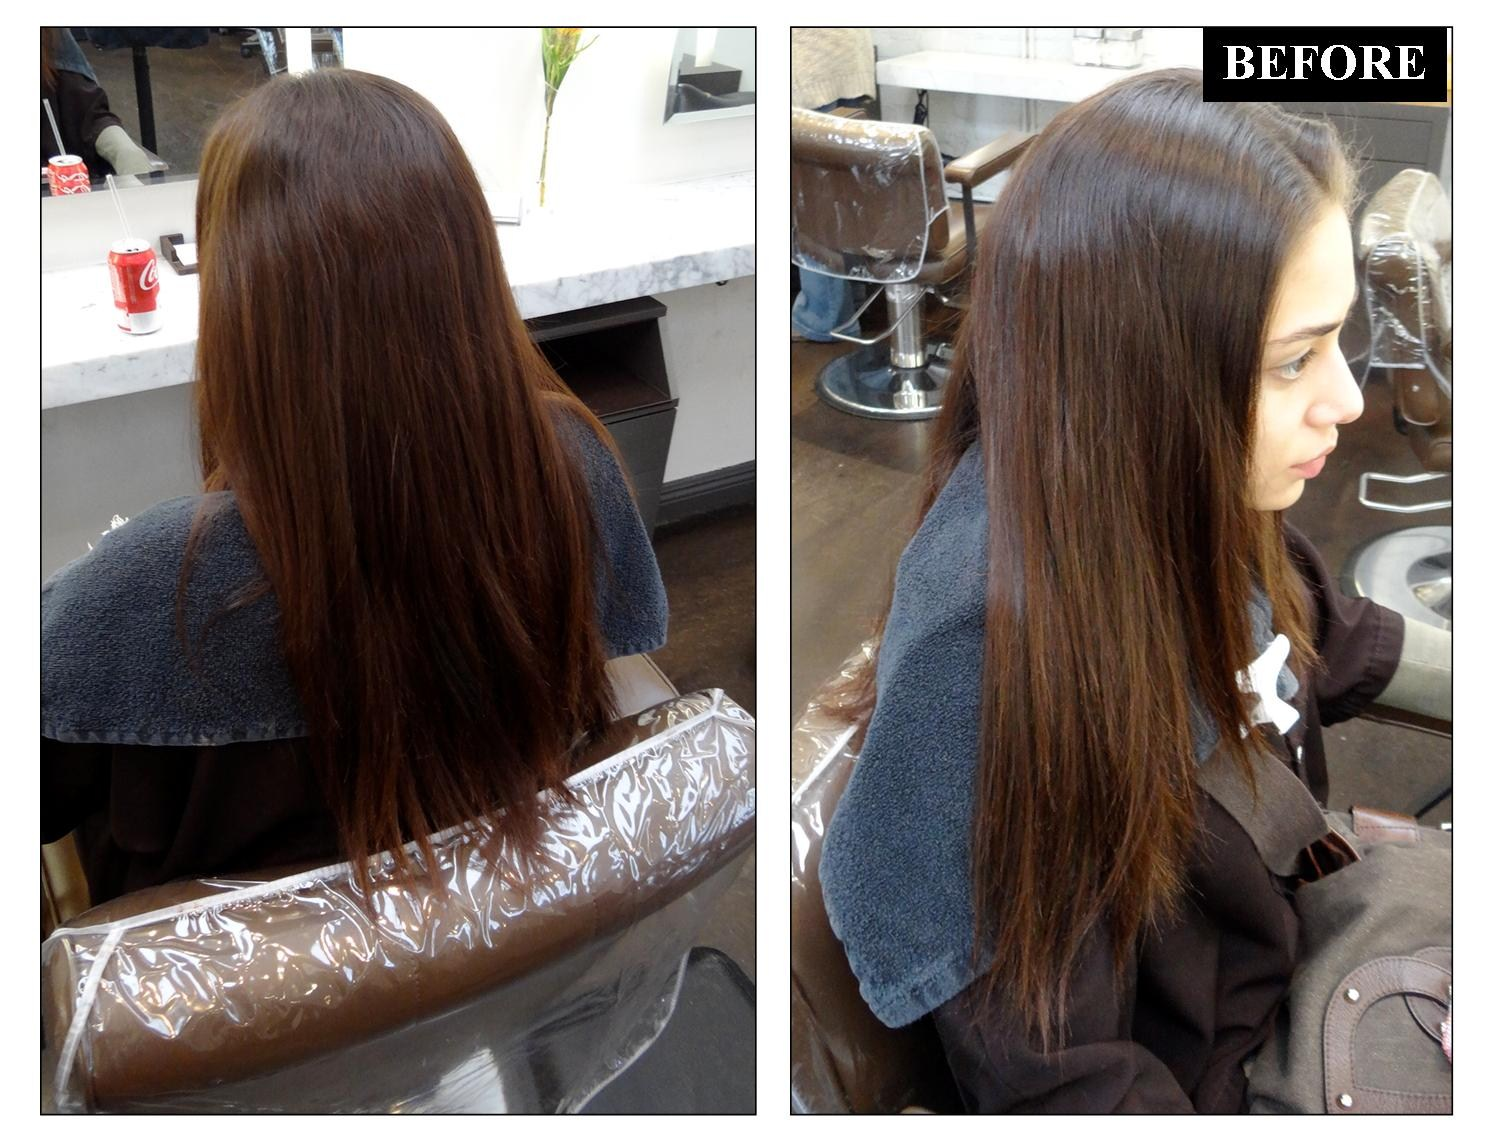 Hair Color Before and After